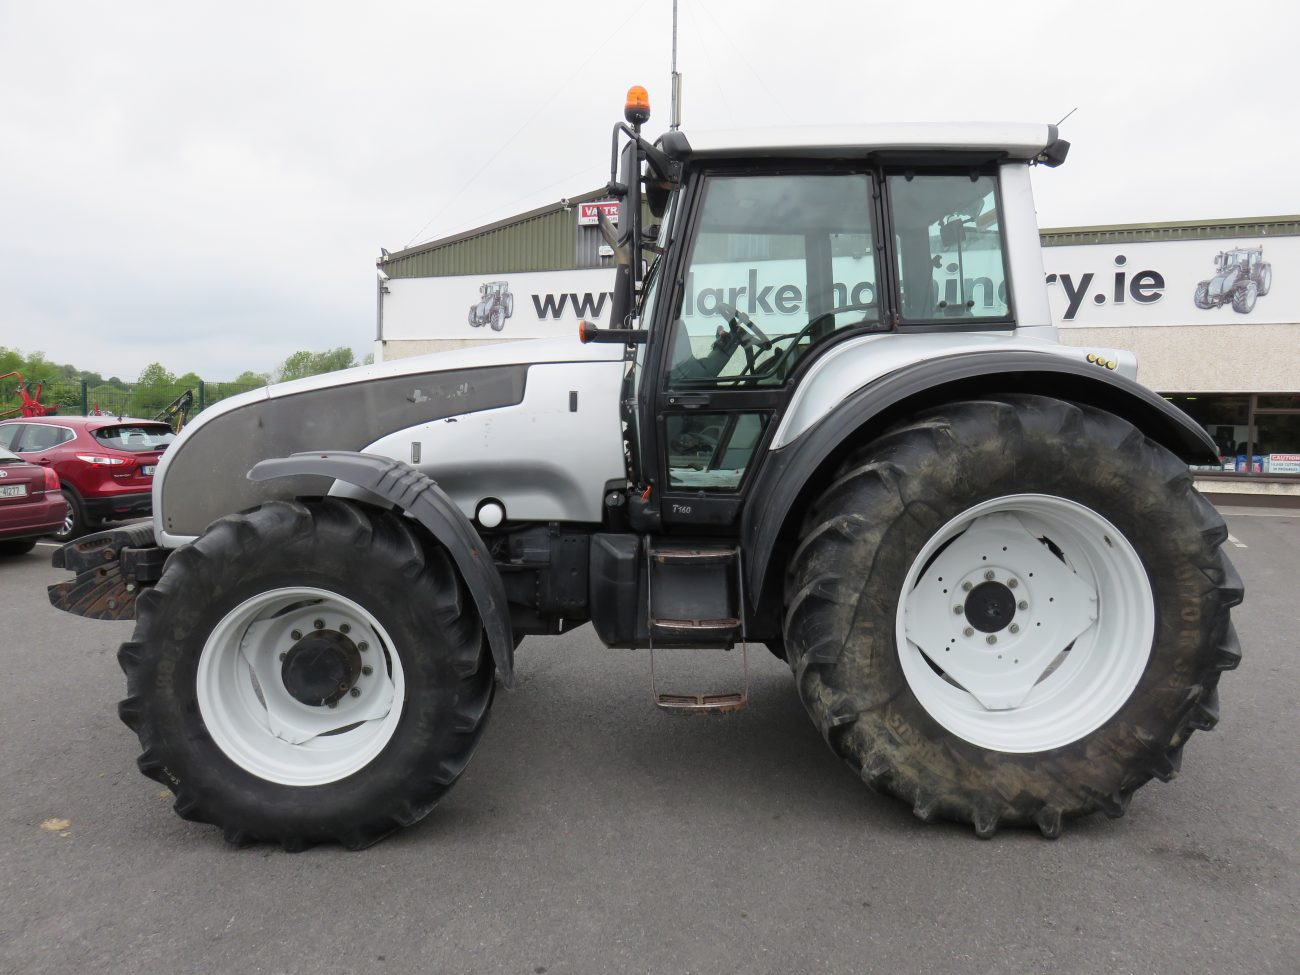 Tractor Front Suspension : Valtra t tractor c w front suspension clarke machinery